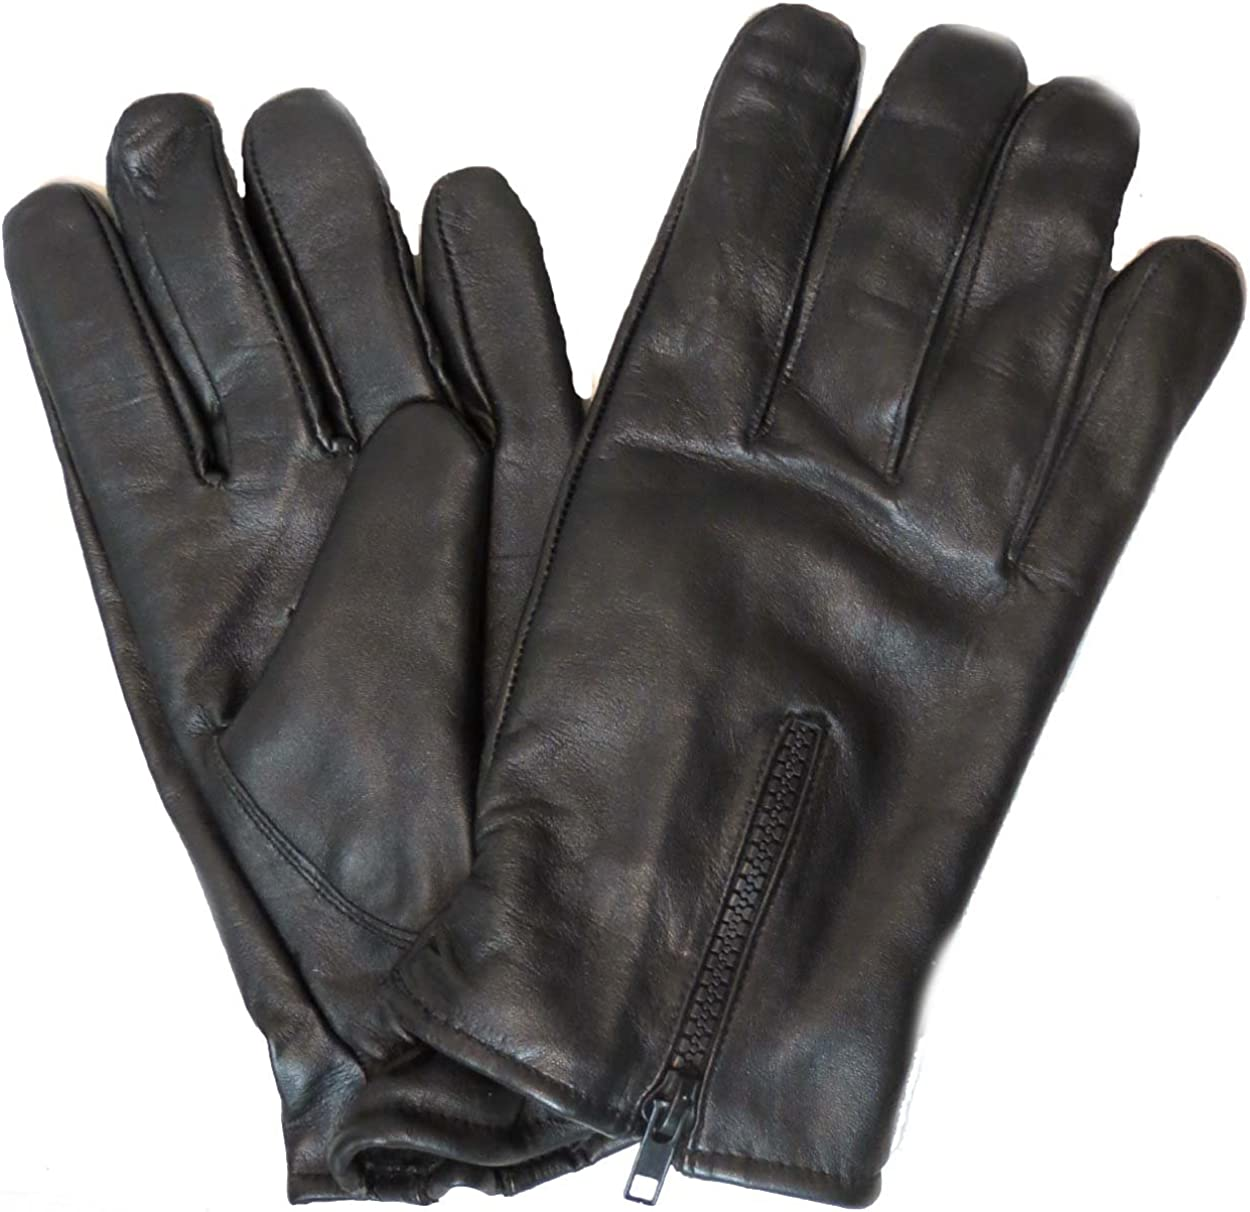 Genuine Leather Unisex Windproof Thermal Full Finger Warm Fleece Lined Driving Gloves 2140 US (Medium)